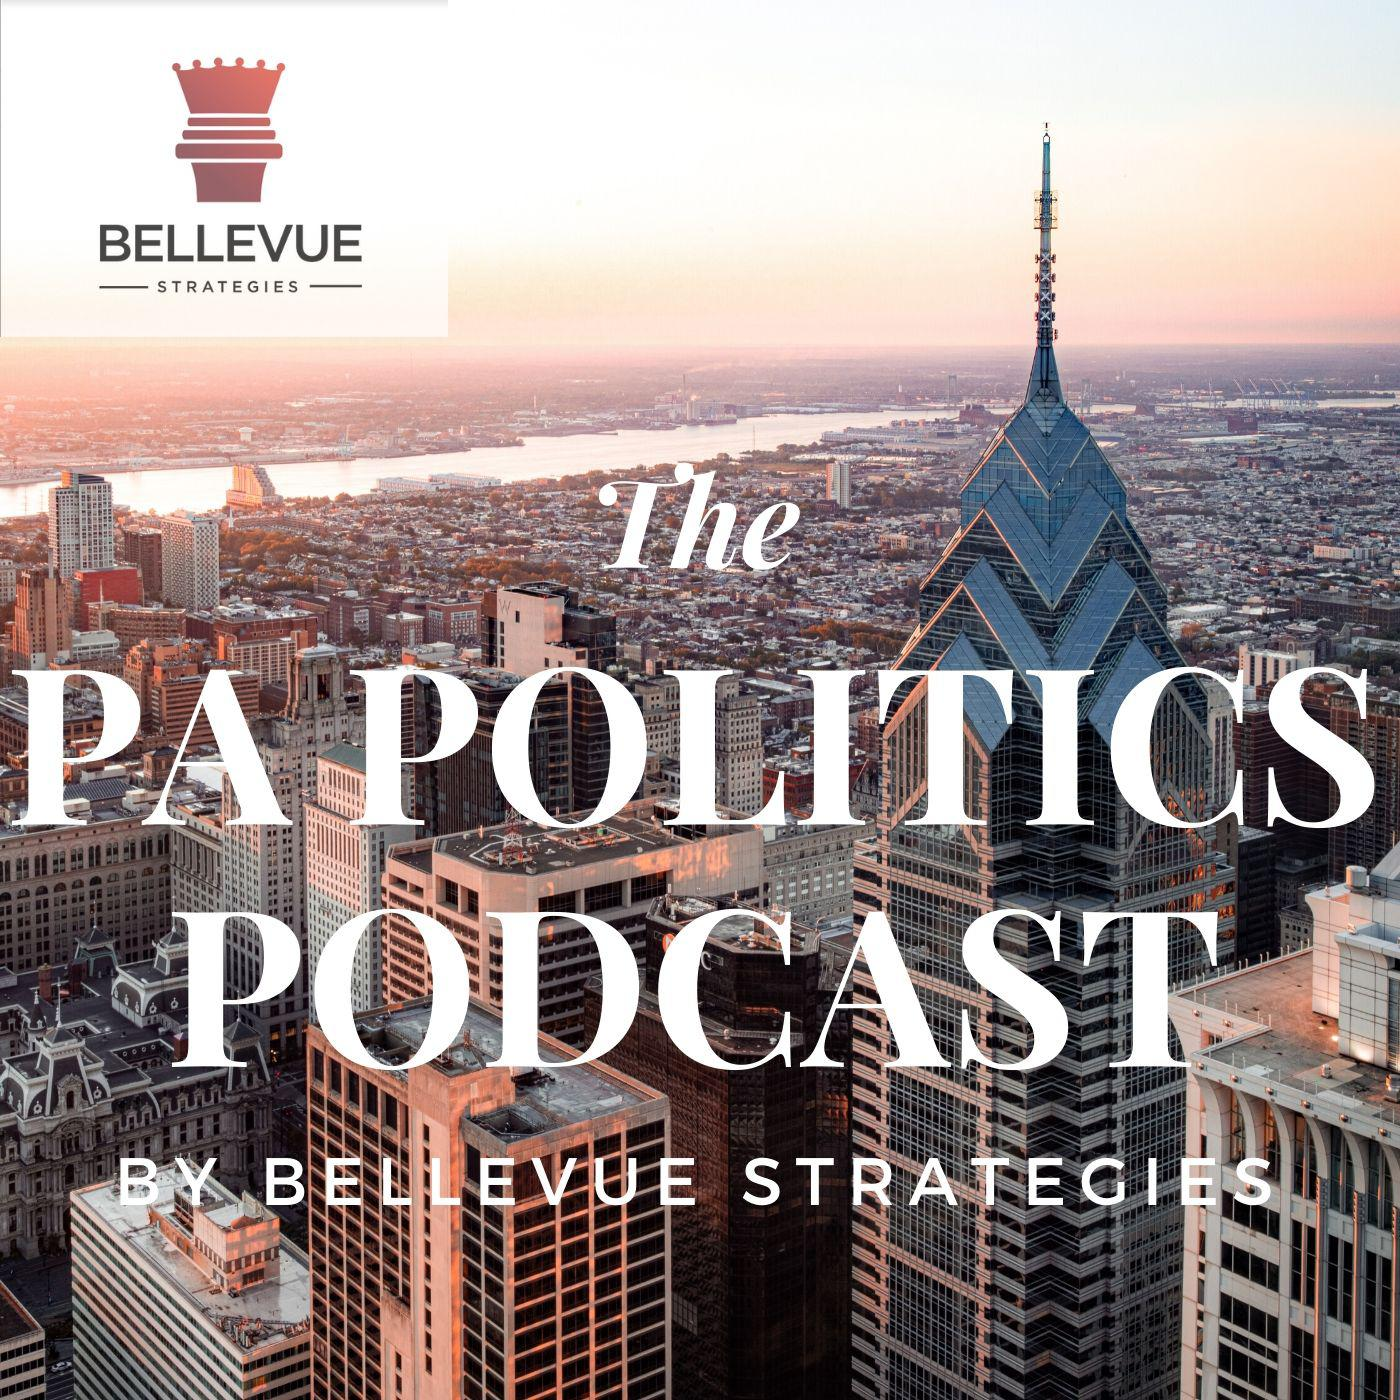 The PA Politics Podcast: Episode 19 - Donald Cohen of In the Public Interest